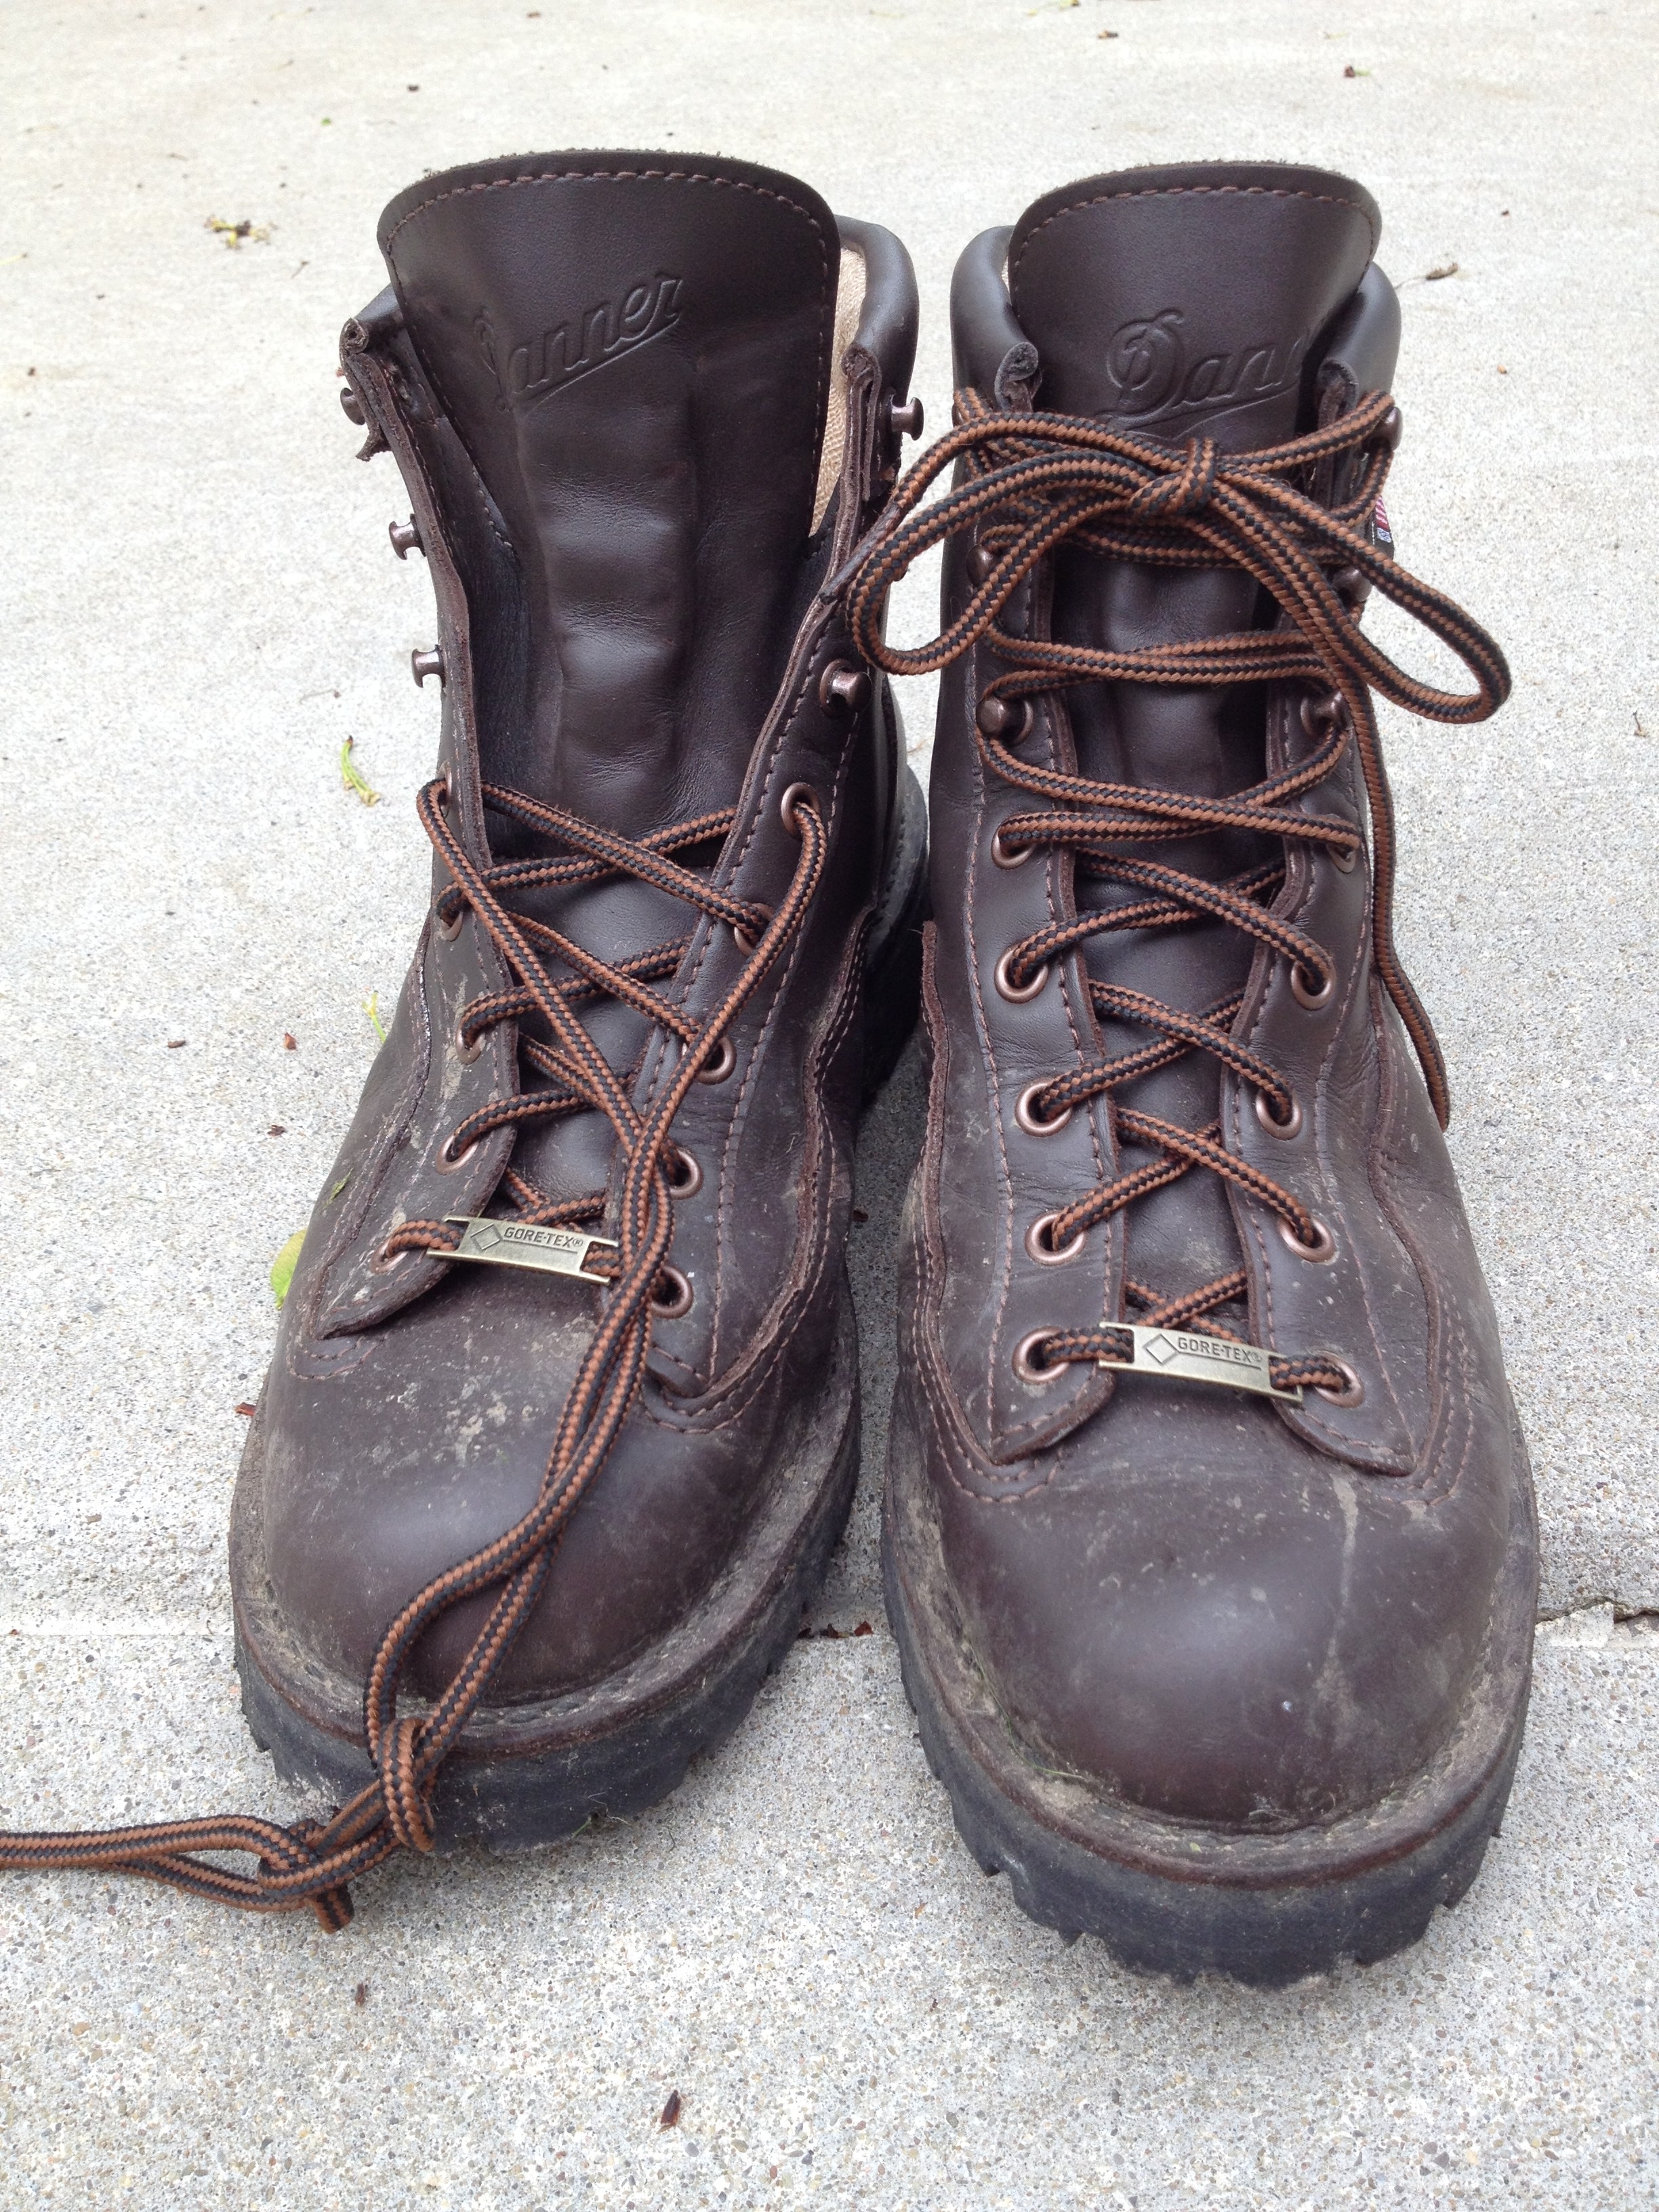 Danner Boots Review v5E5F5eQ